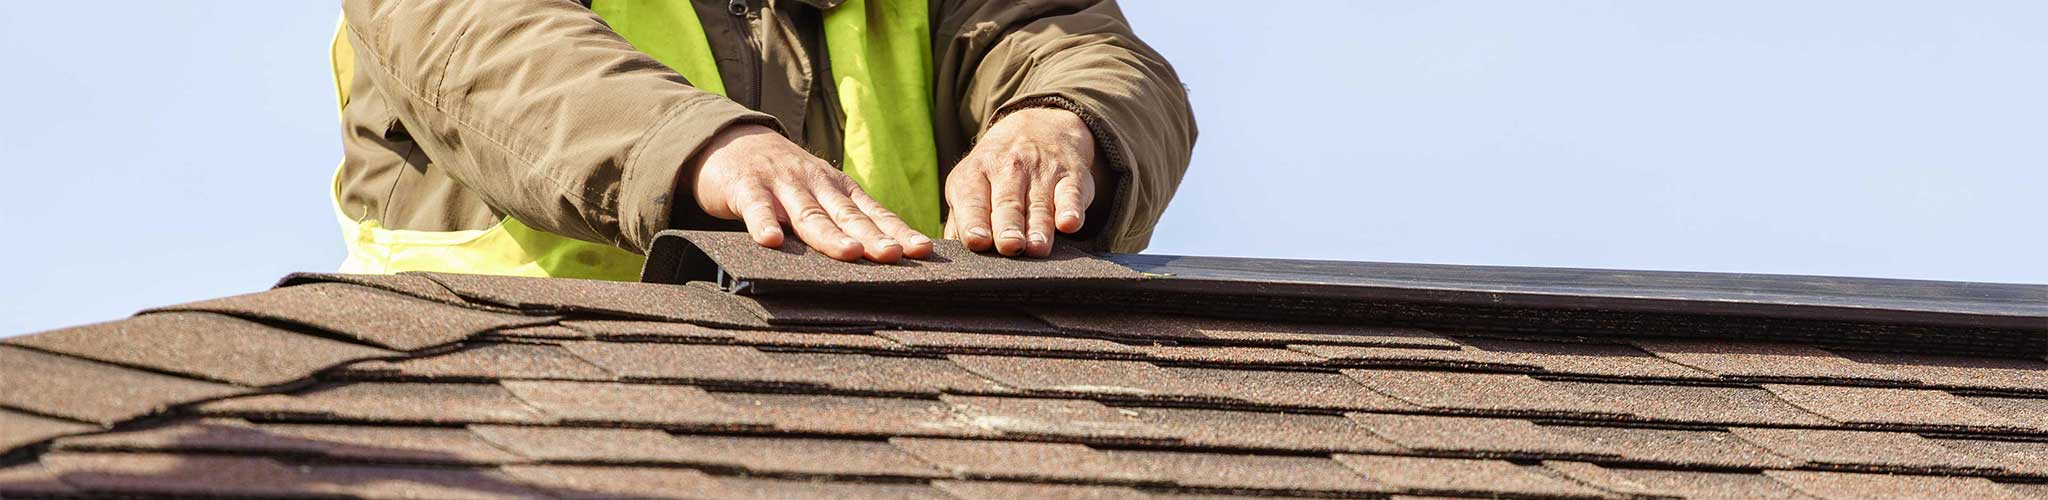 Dedicated Roofing & Exteriors - Professional Roofing Calgary Roof Repair Roof Replacement Roof Inspection